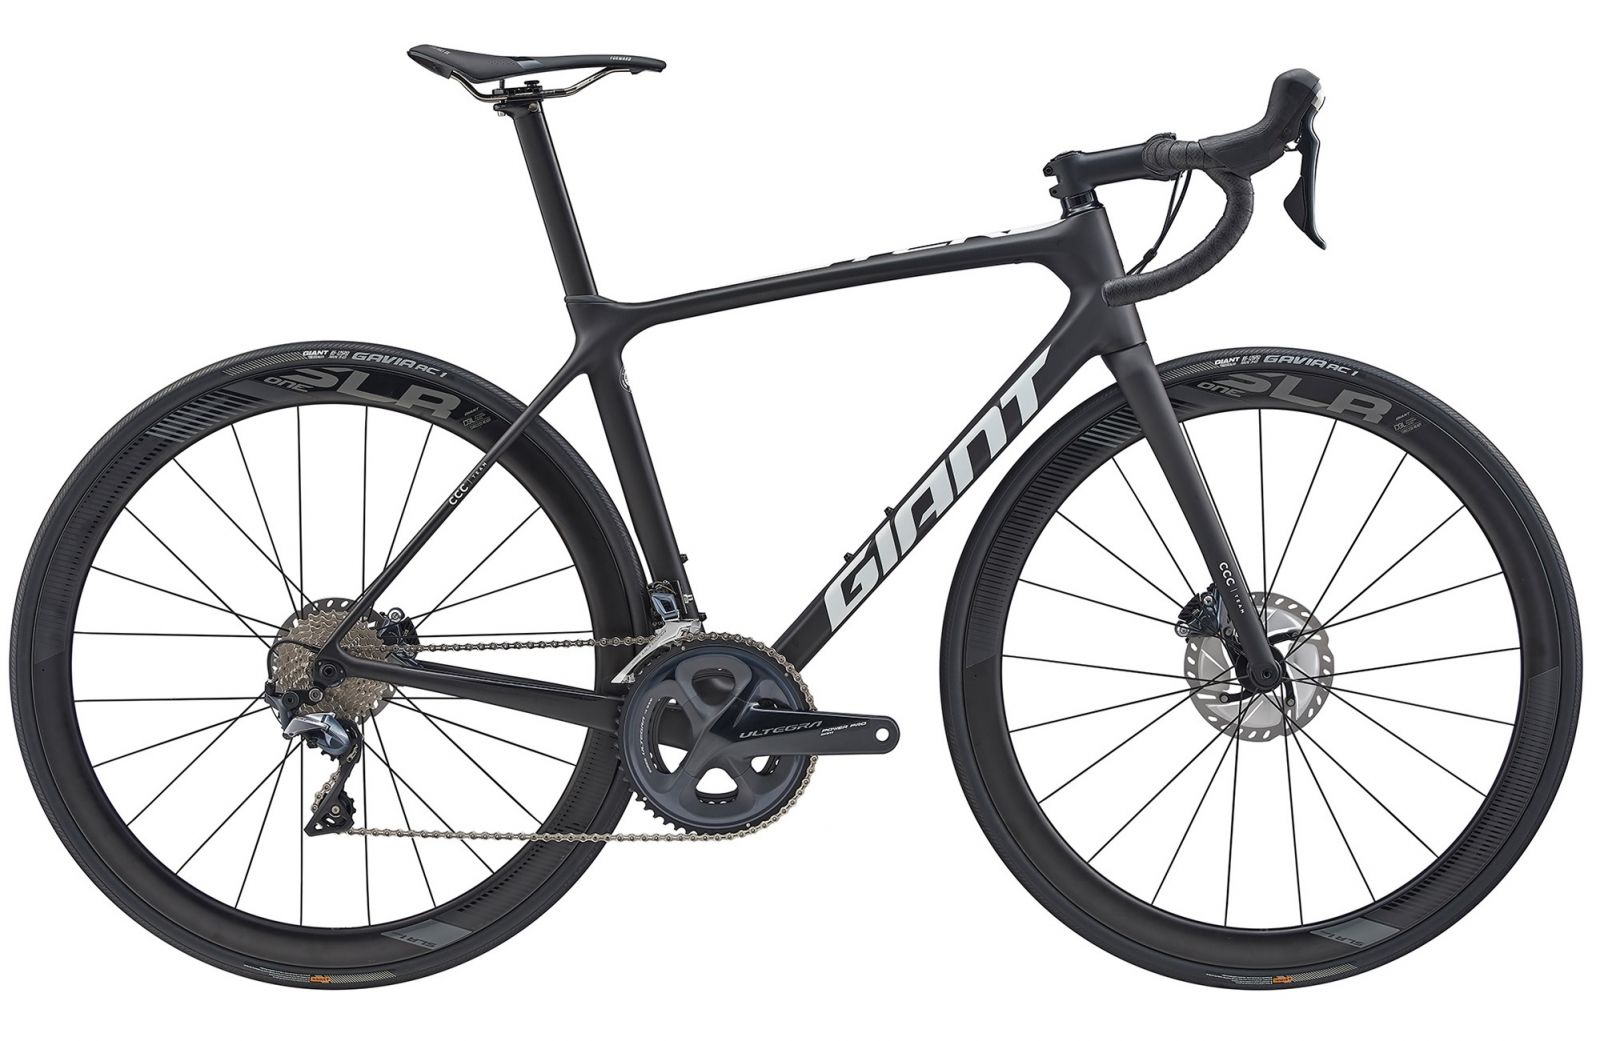 GIANT 2020 TCR ADPRO Team Disc